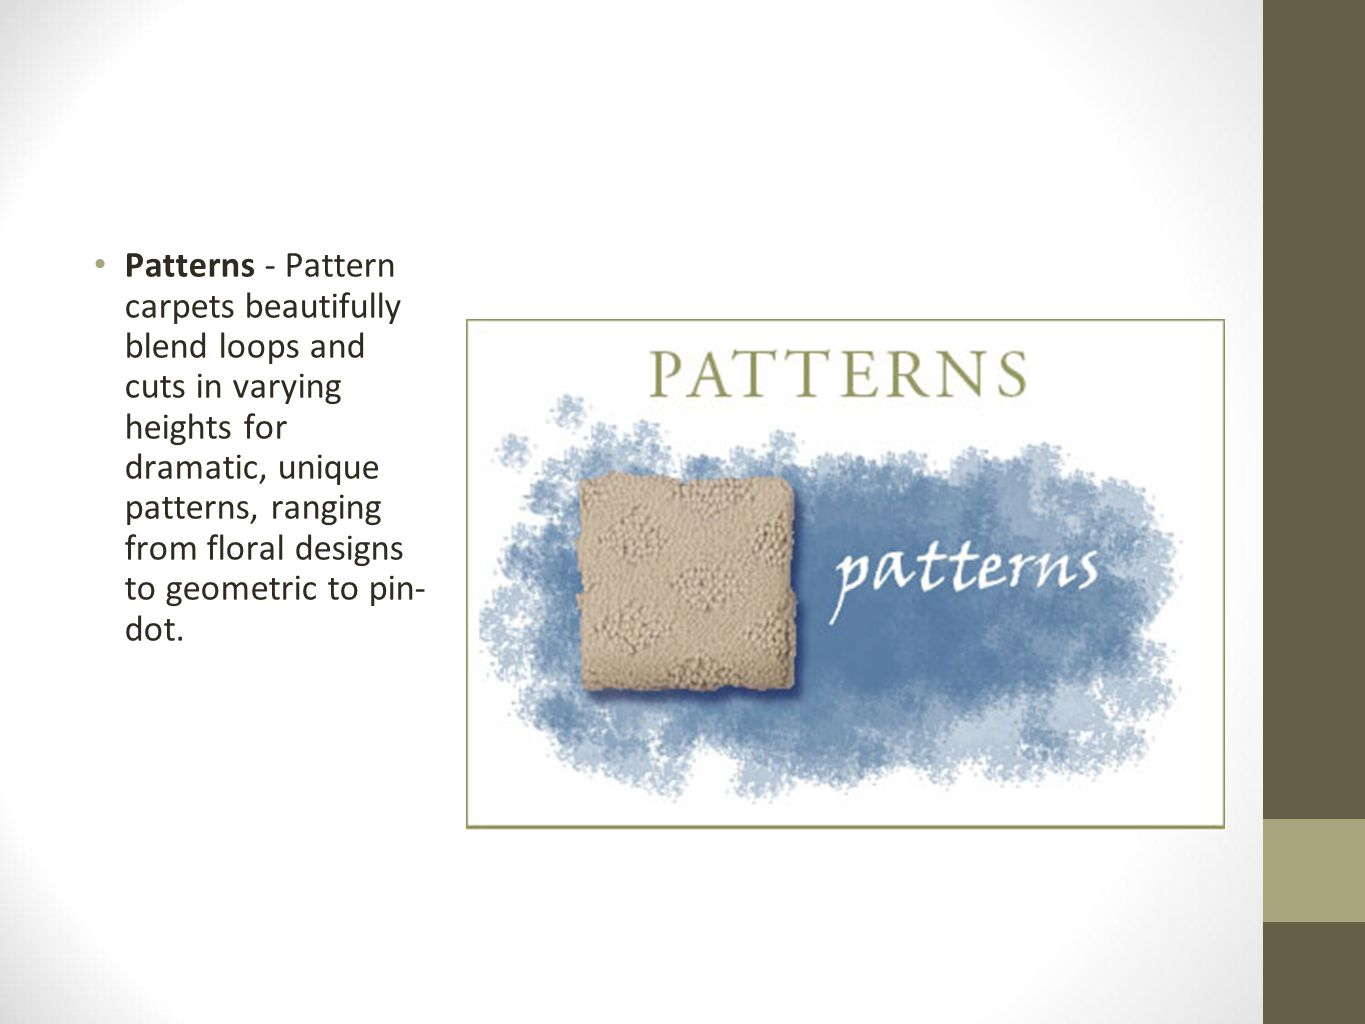 Patterns - Pattern carpets beautifully blend loops and cuts in varying heights for dramatic, unique patterns, ranging from floral designs to geometric to pin- dot.